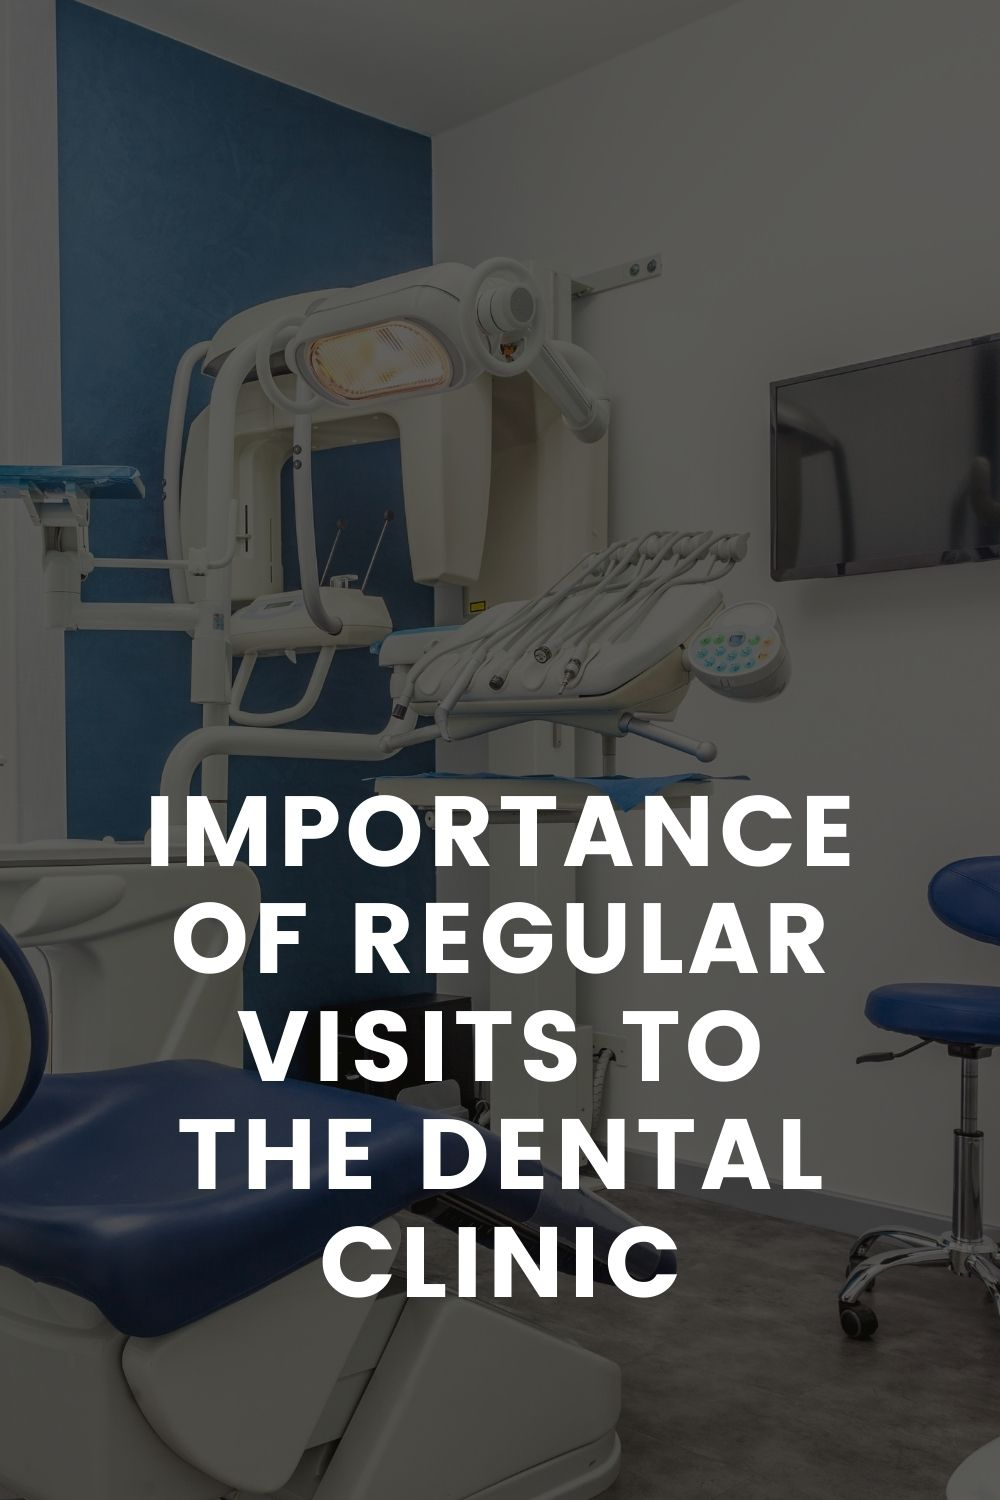 IMPORTANCE OF REGULAR VISITS TO THE DENTAL CLINIC